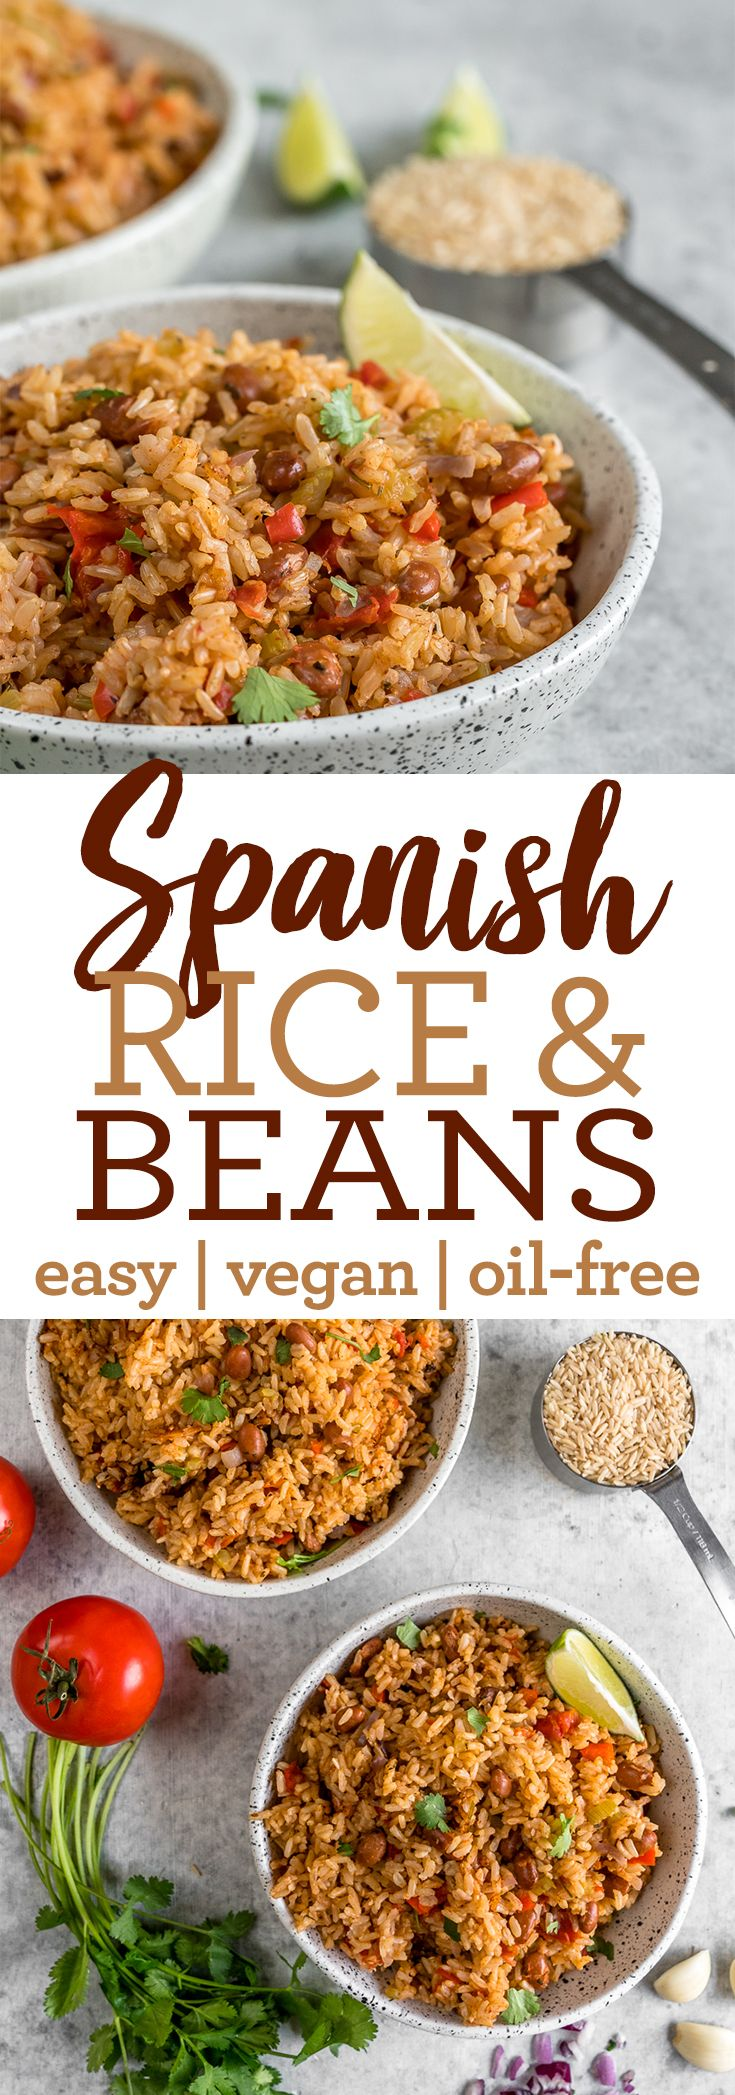 Vegan Spanish Rice And Beans Healthy Oil Free